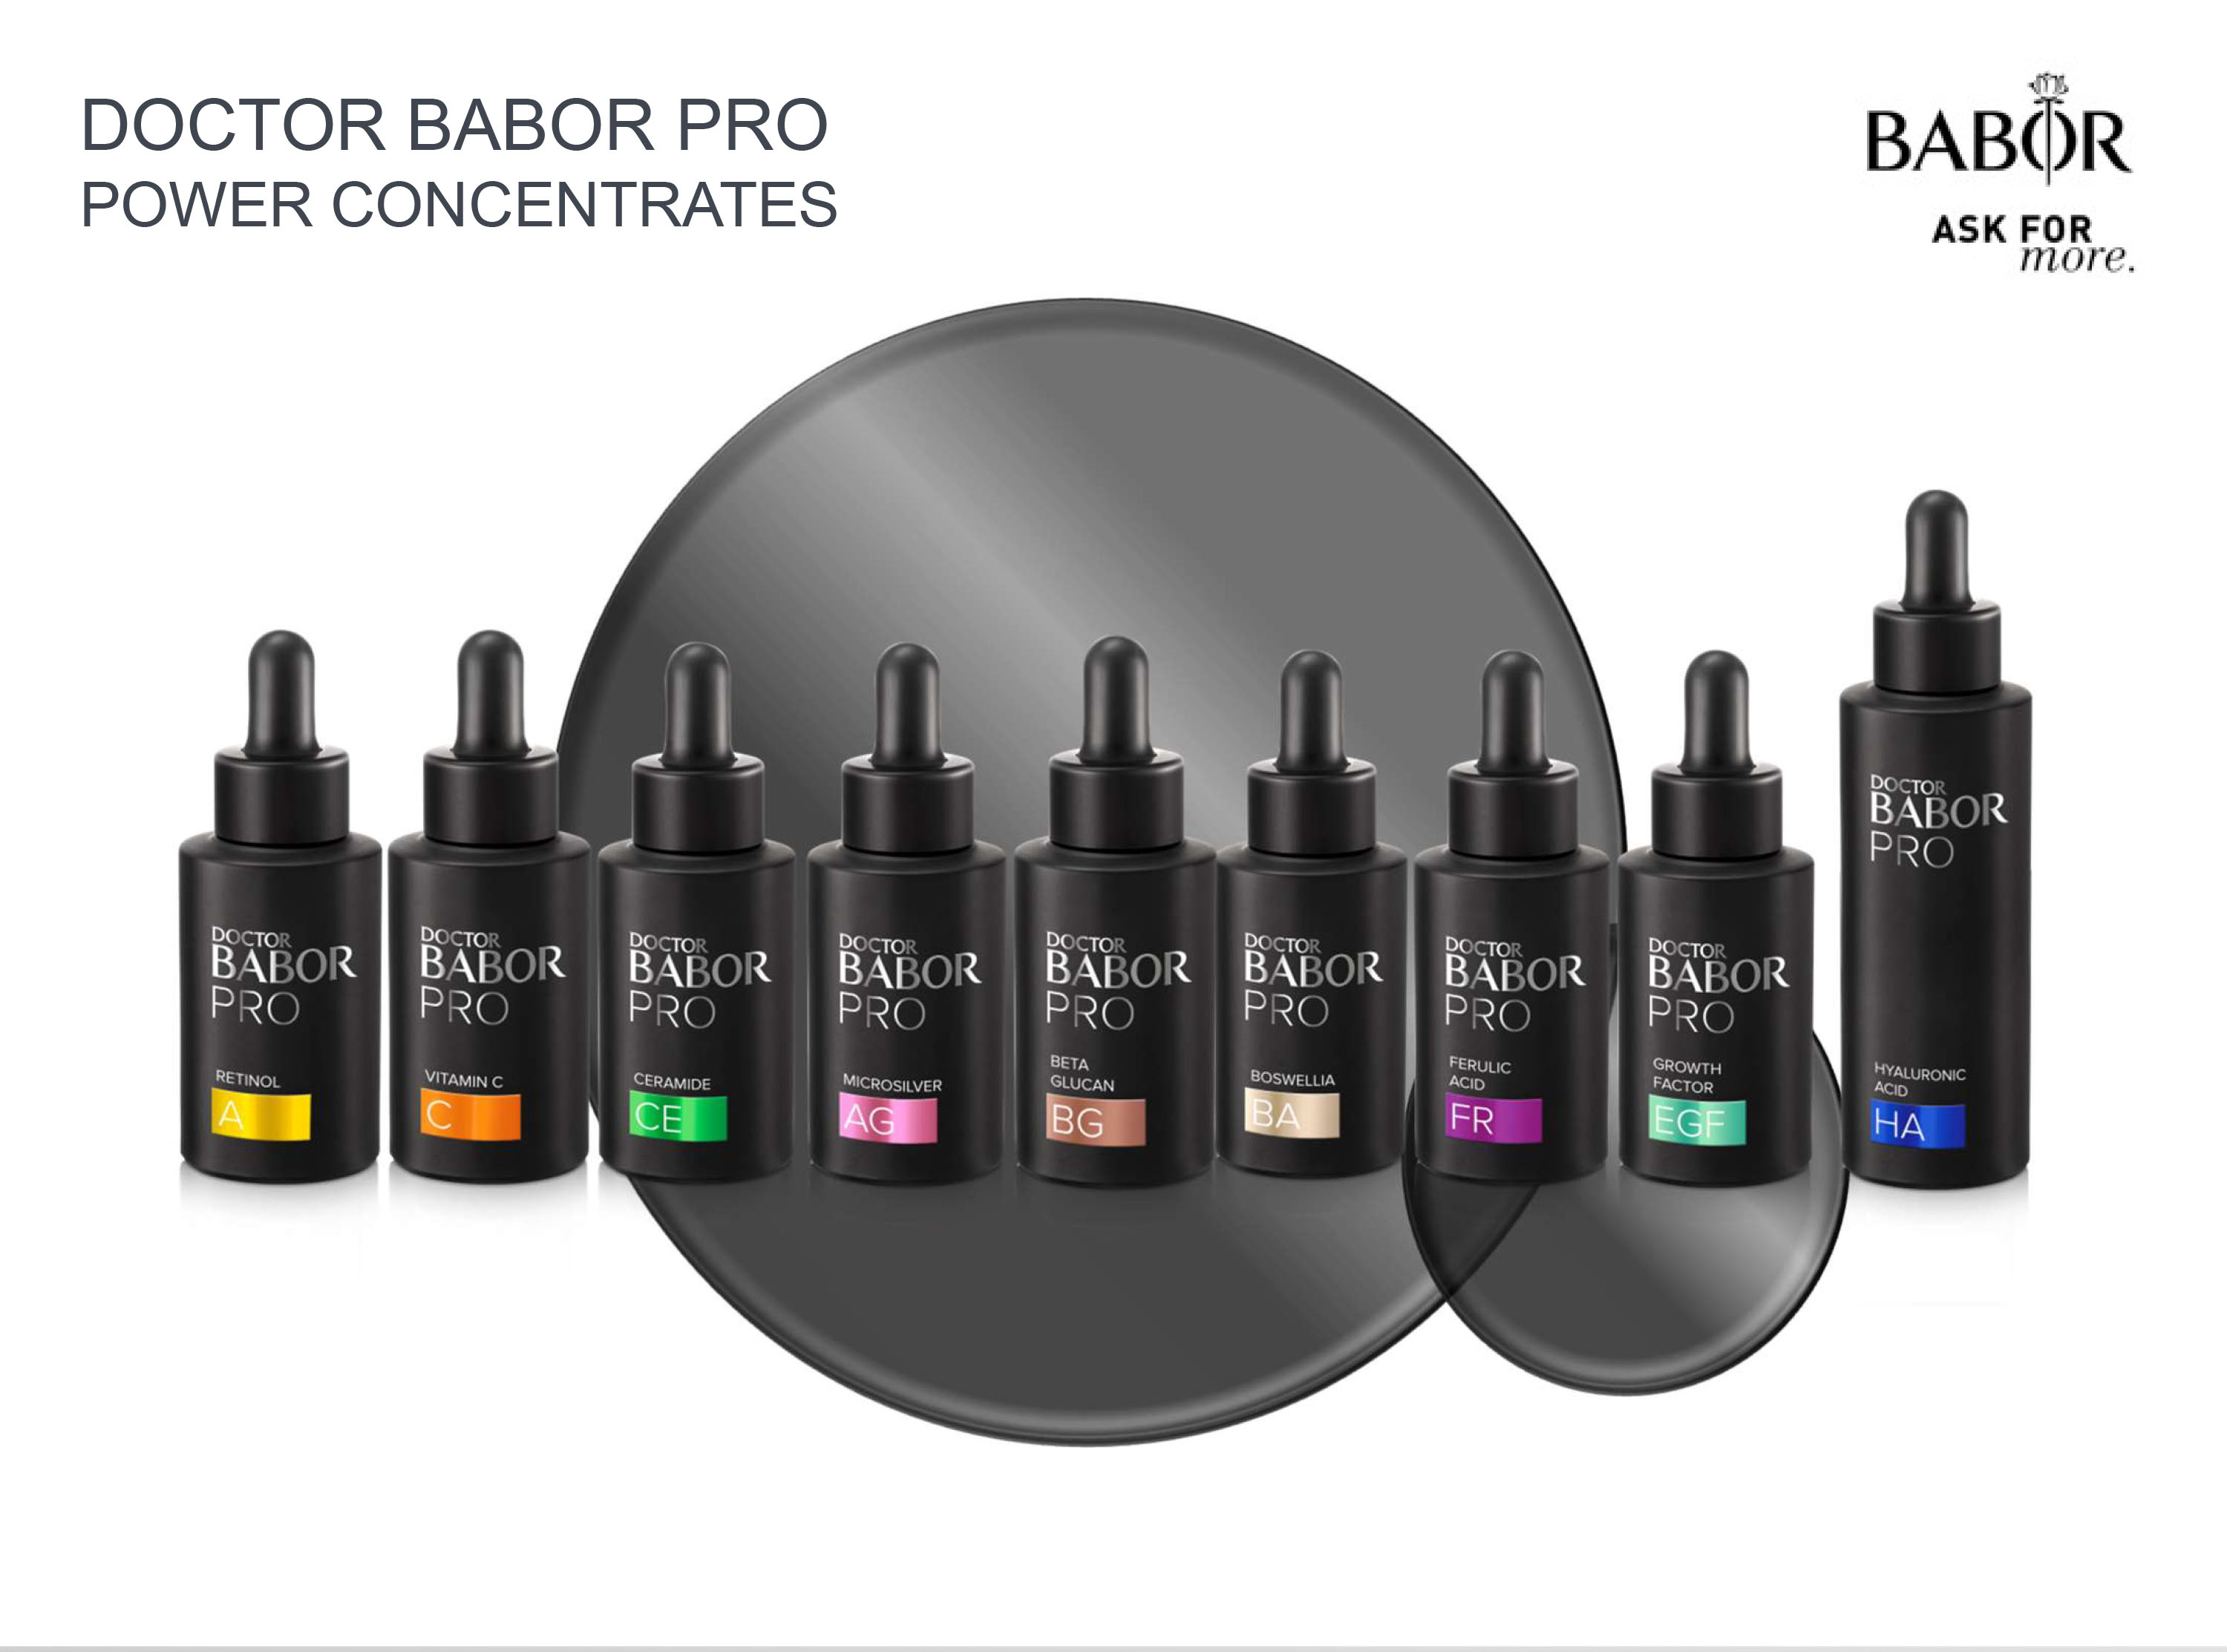 Doctor Babor Pro Power Concentrates